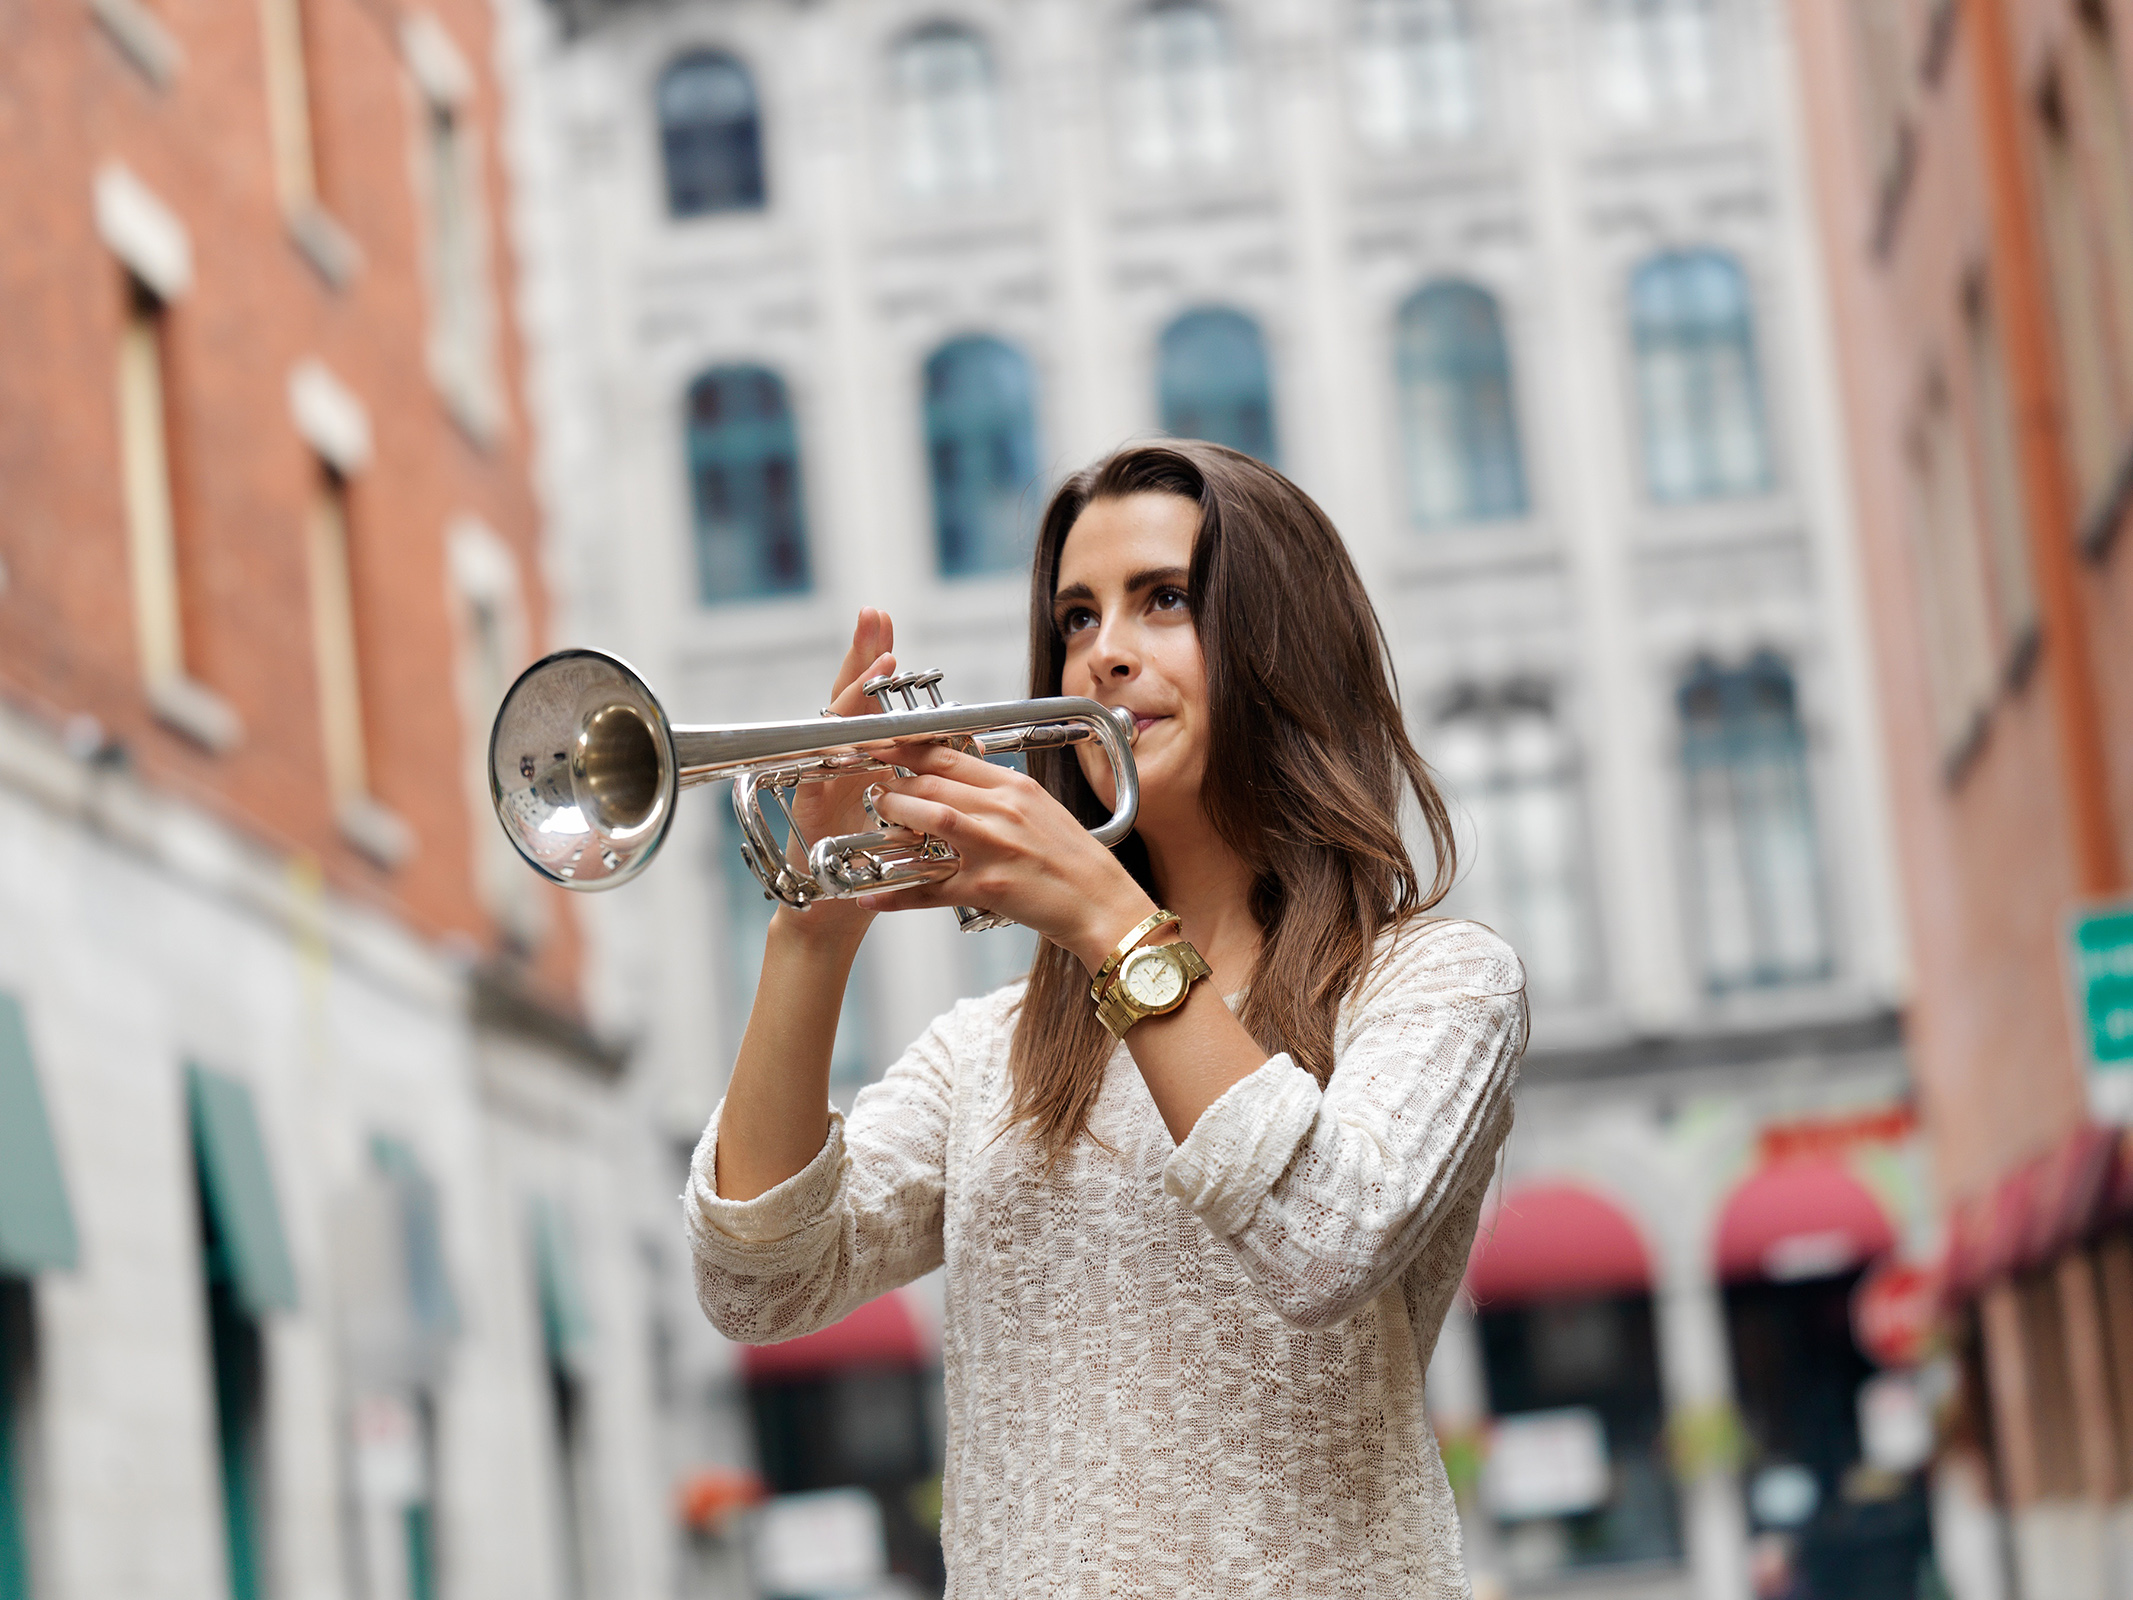 Editorial photography project for Sarah Belle Reid, a trumpet player and performance artist in Montreal